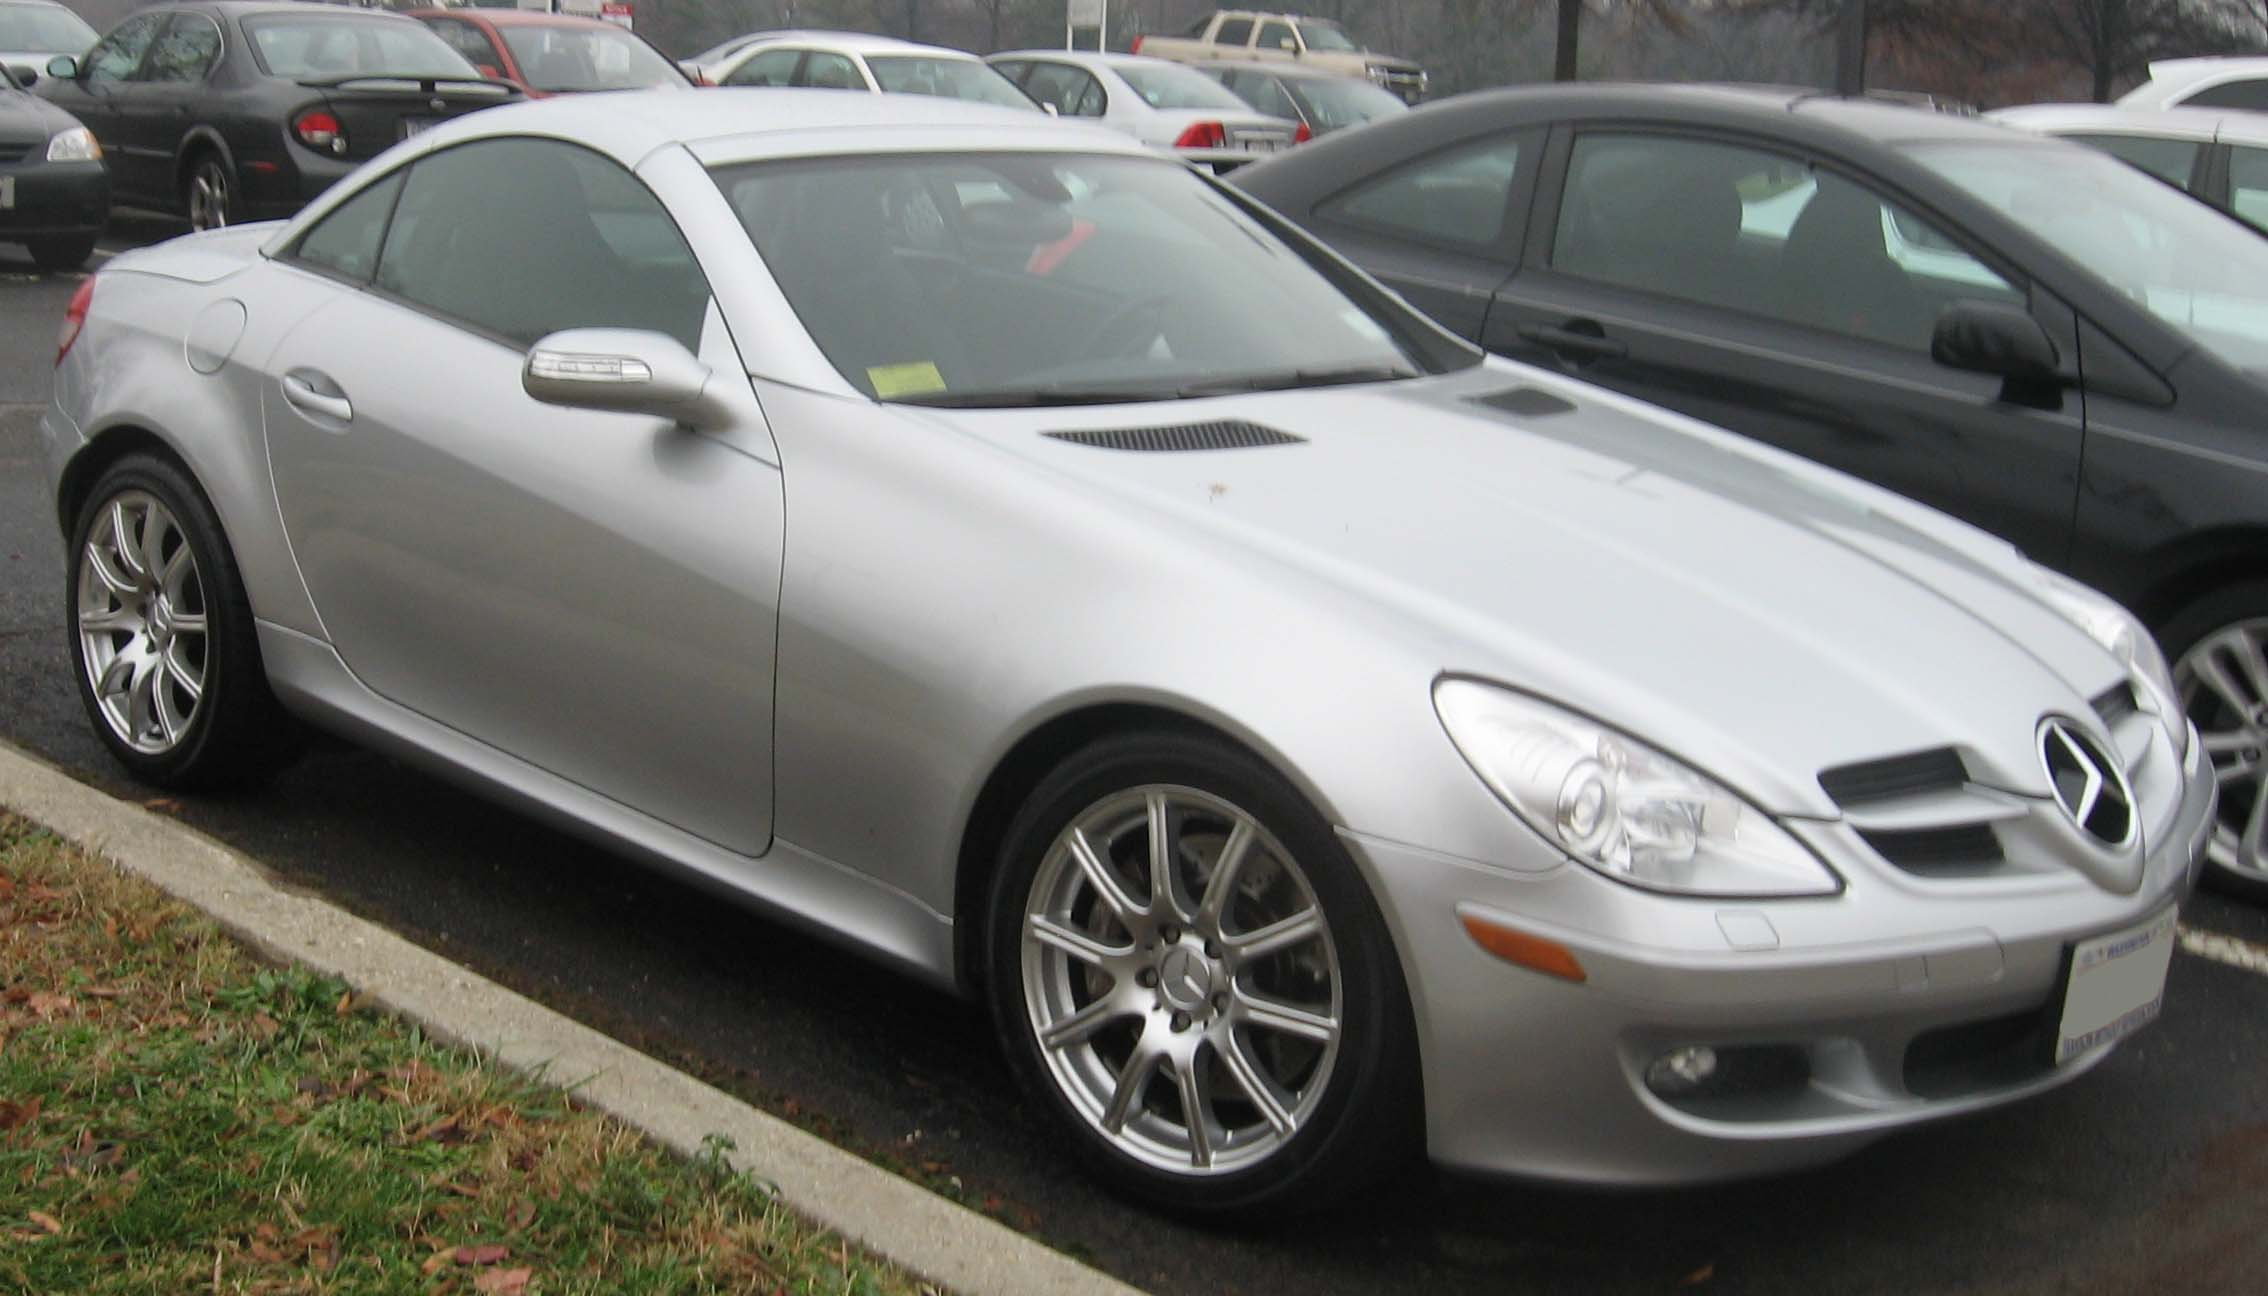 Mercedes benz slk 350 technical details history photos for Www mercedes benz parts